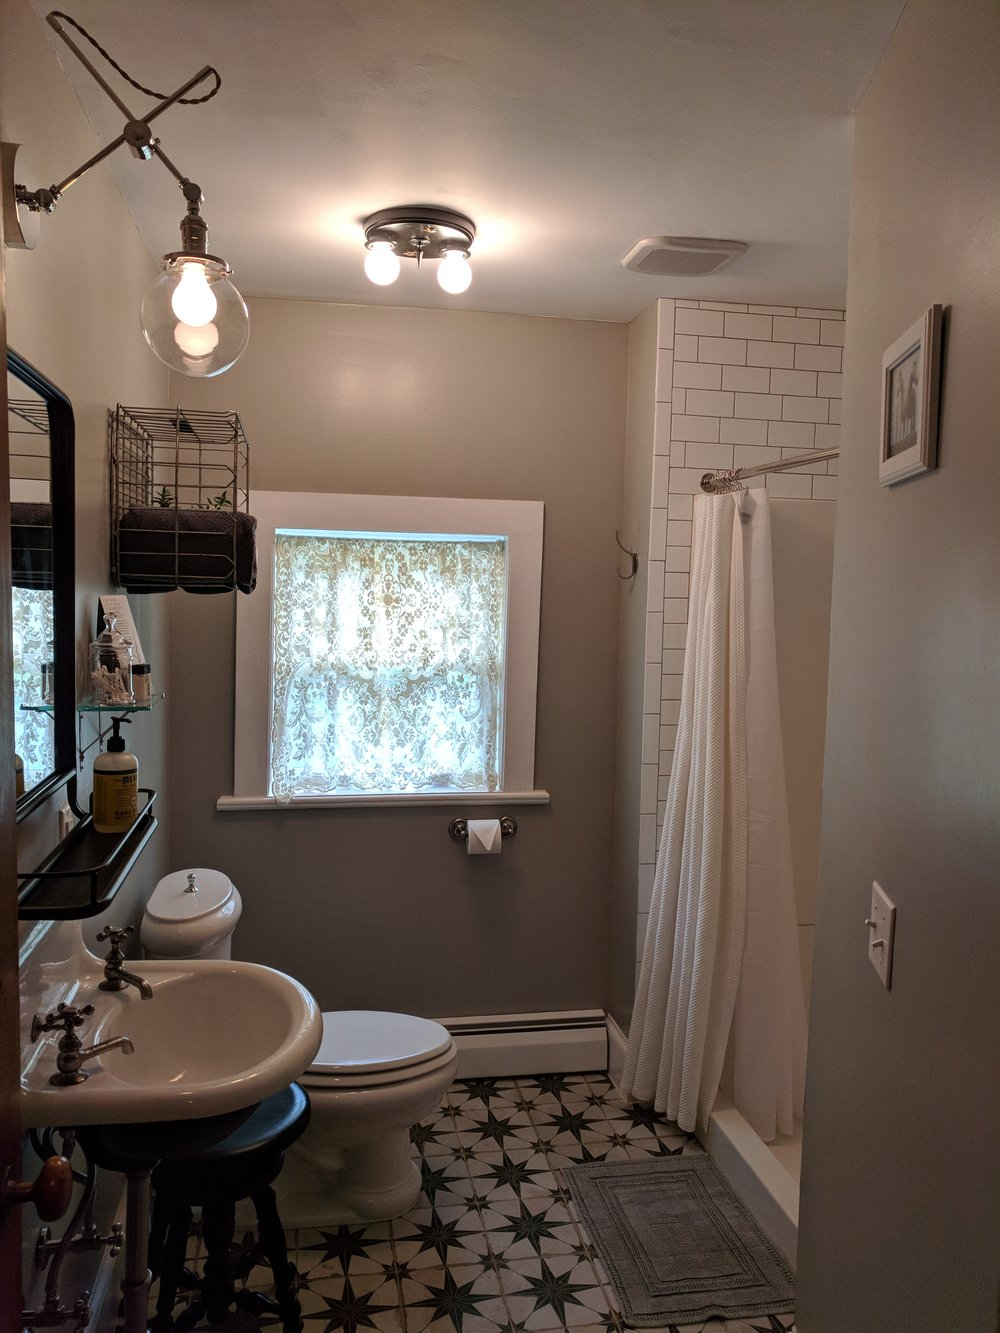 Roosevelt private bathroom with large shower and tile flooring